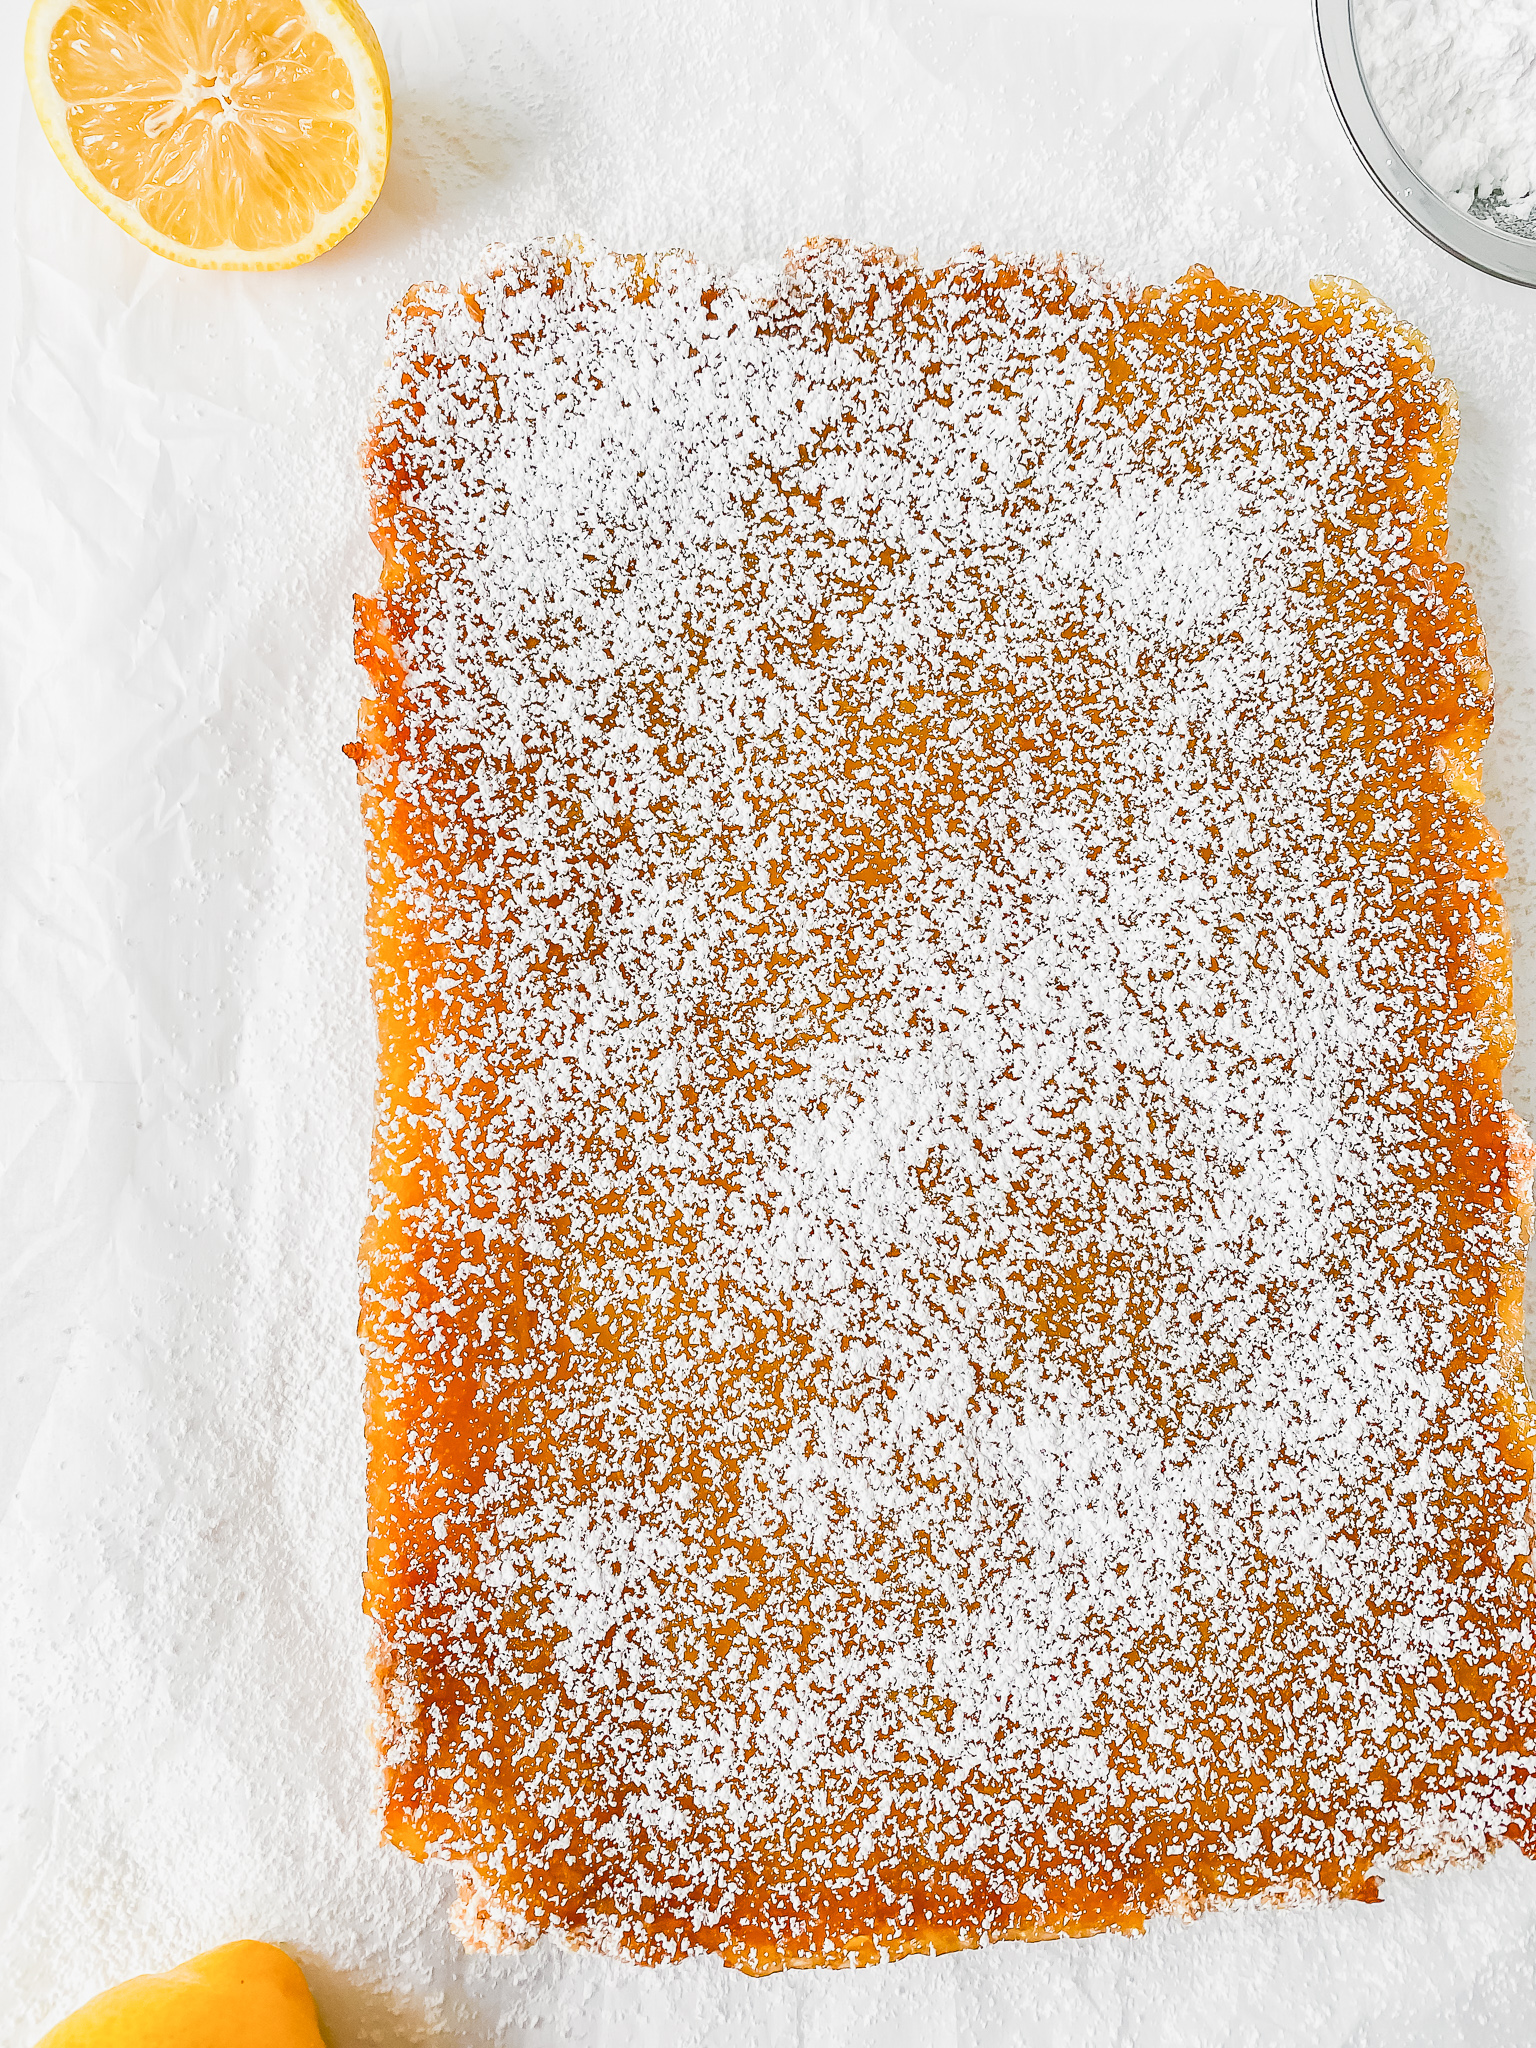 This easy lemon bars recipe is so good! Made with lemon curd, brown sugar, and crushed graham crackers, these chewy lemon squares are the ultimate dessert for any day.